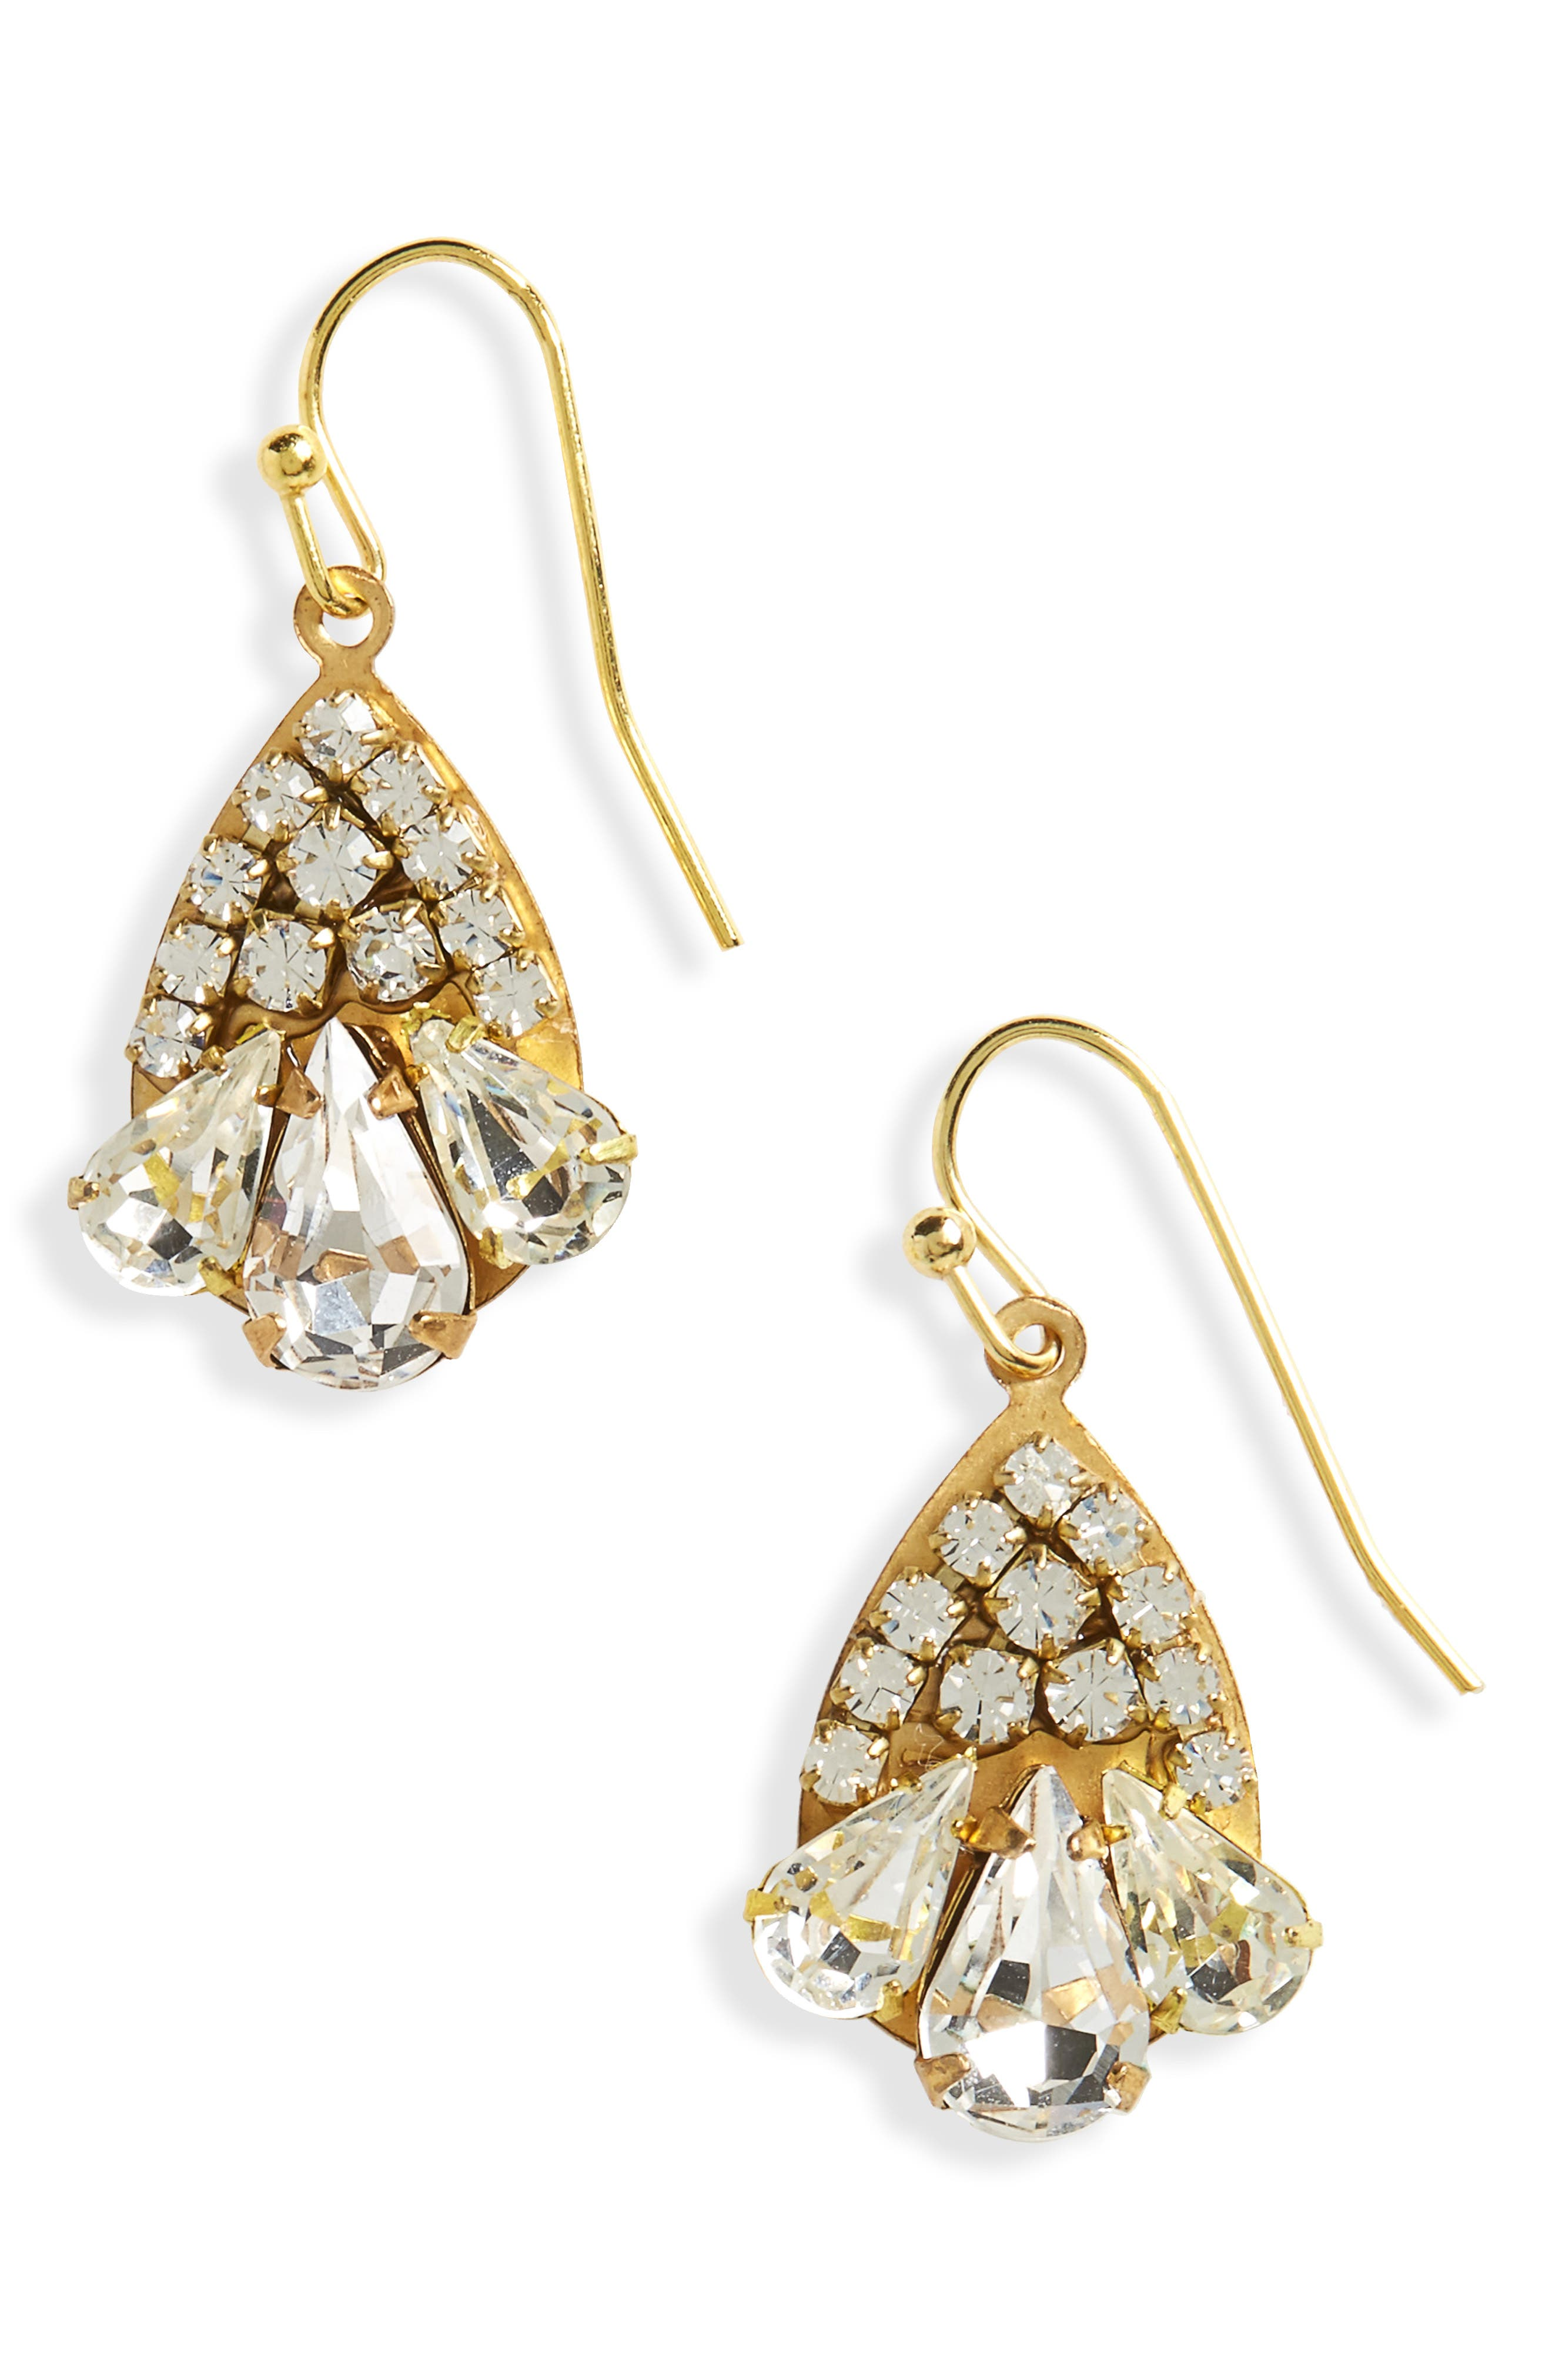 Scalloped Crystal Earrings,                         Main,                         color, Crystal/ Gold